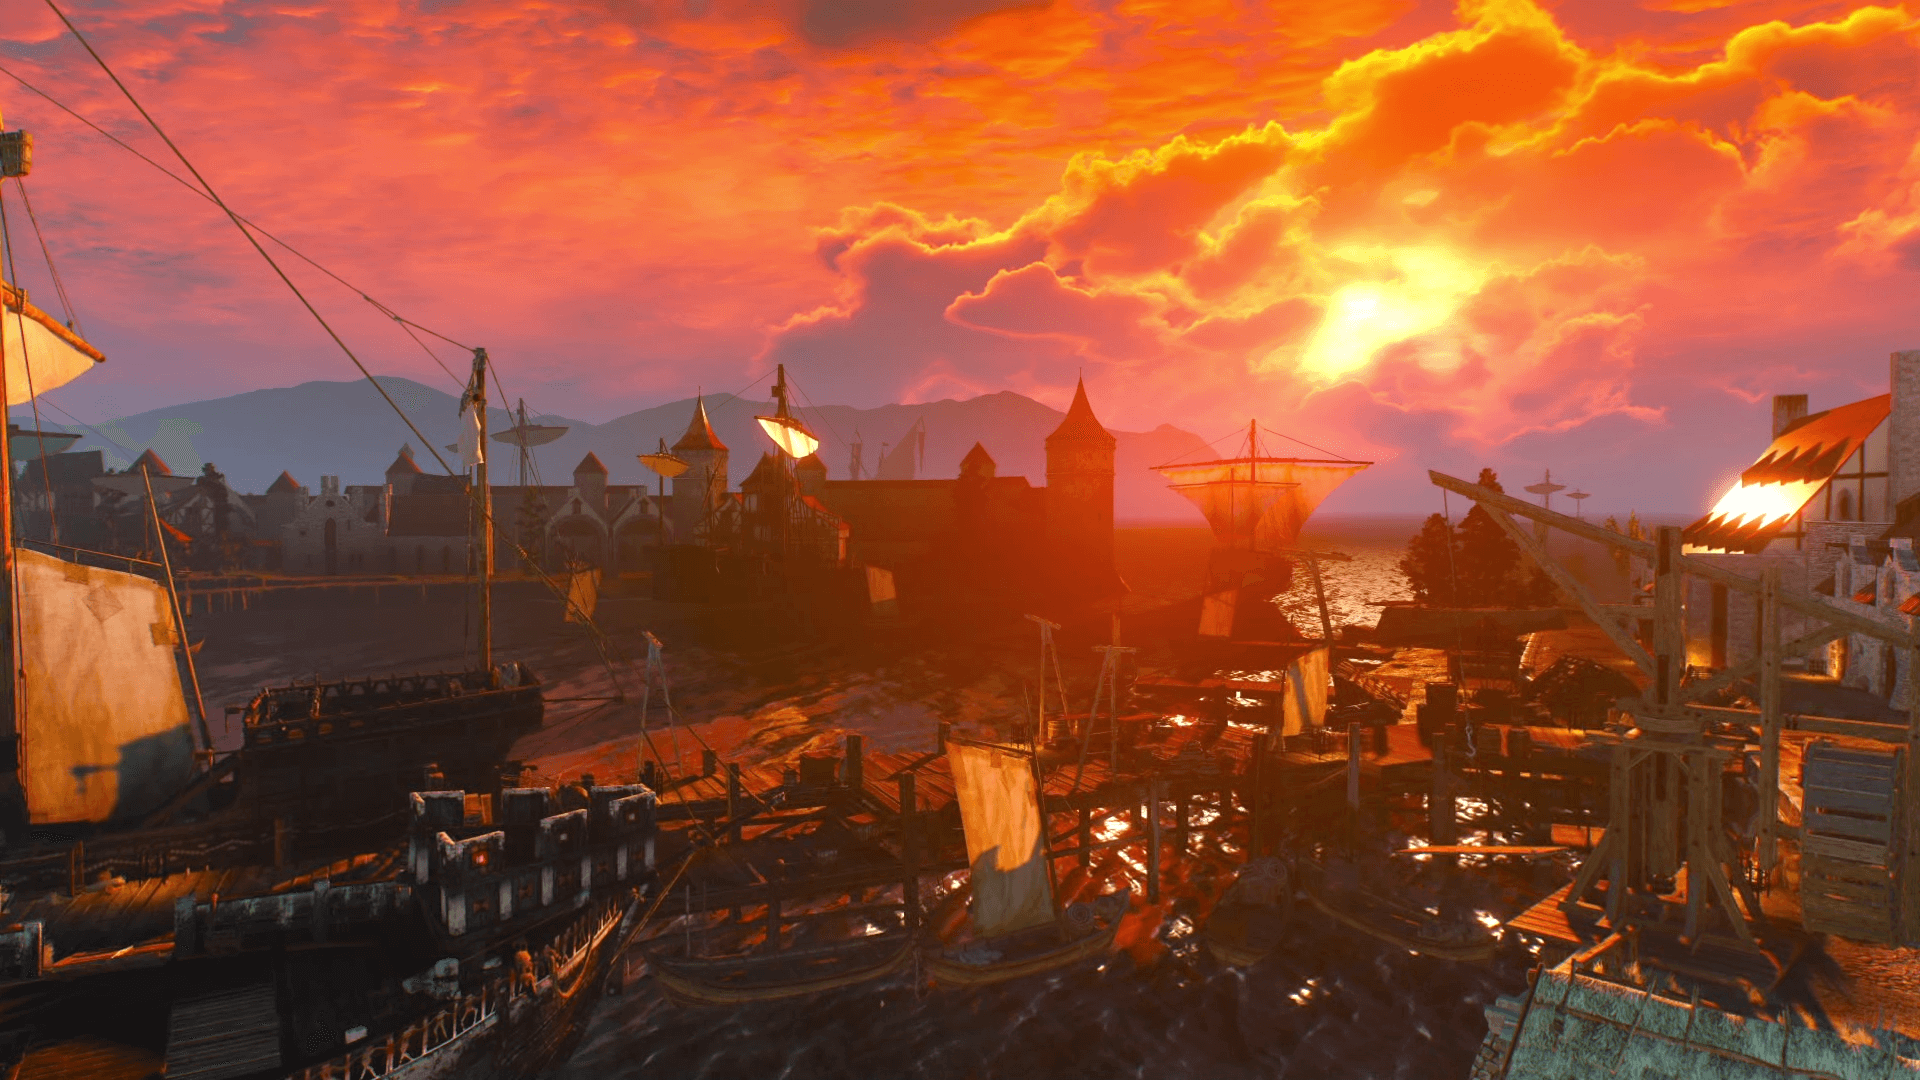 Witcher 3 sunset